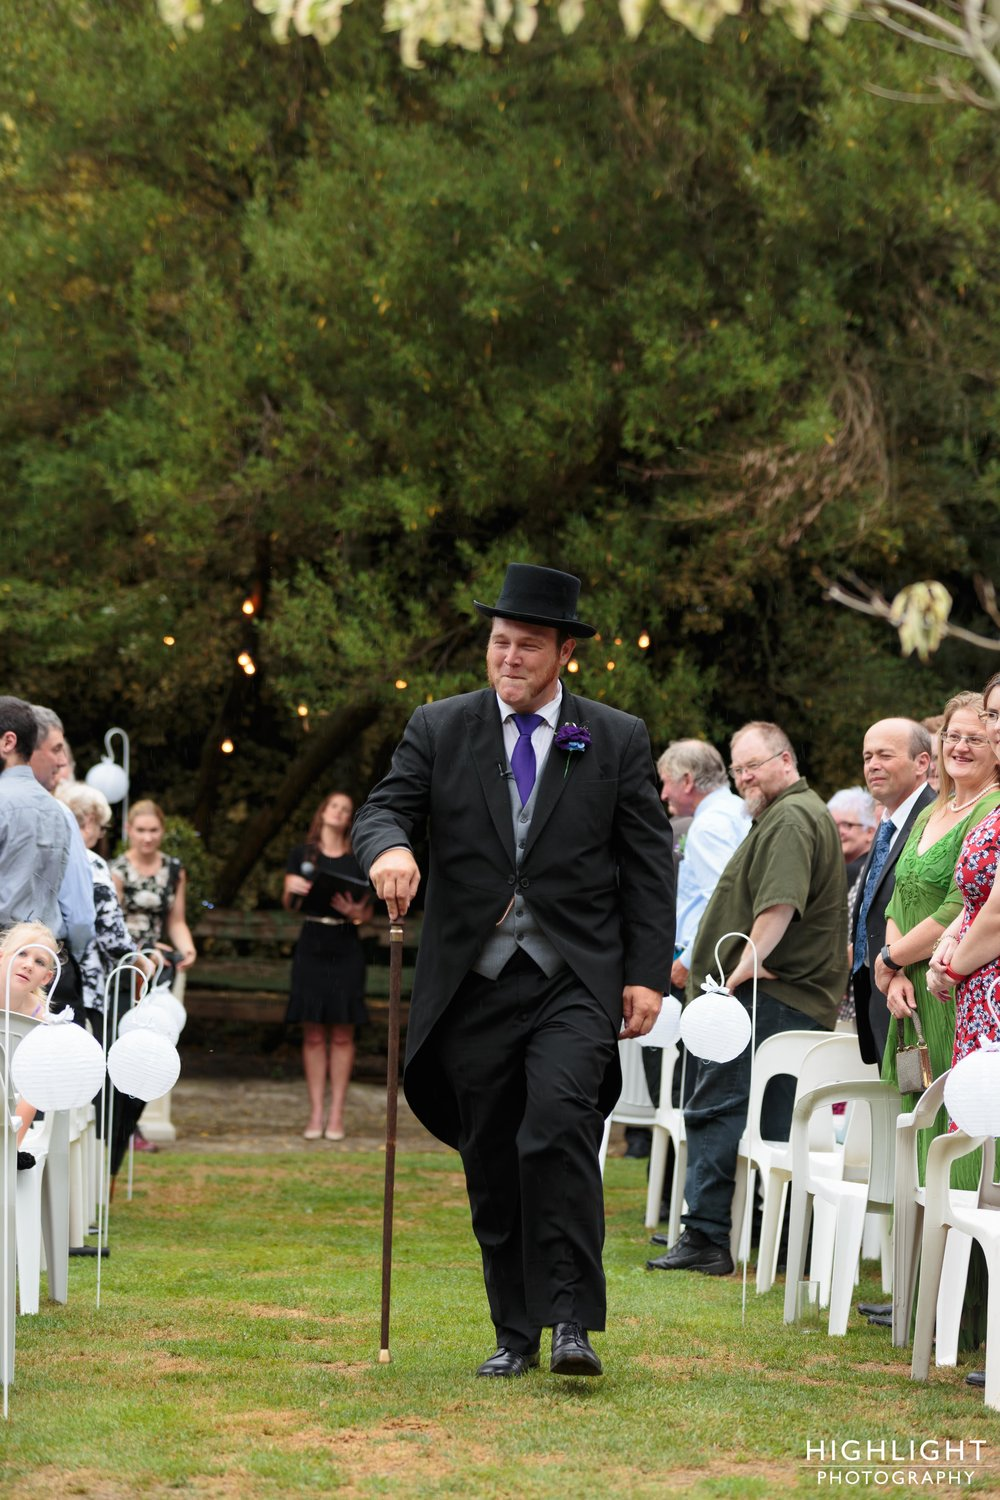 highlight-wedding-photography-new-zealand-palmerston-north-47.jpg